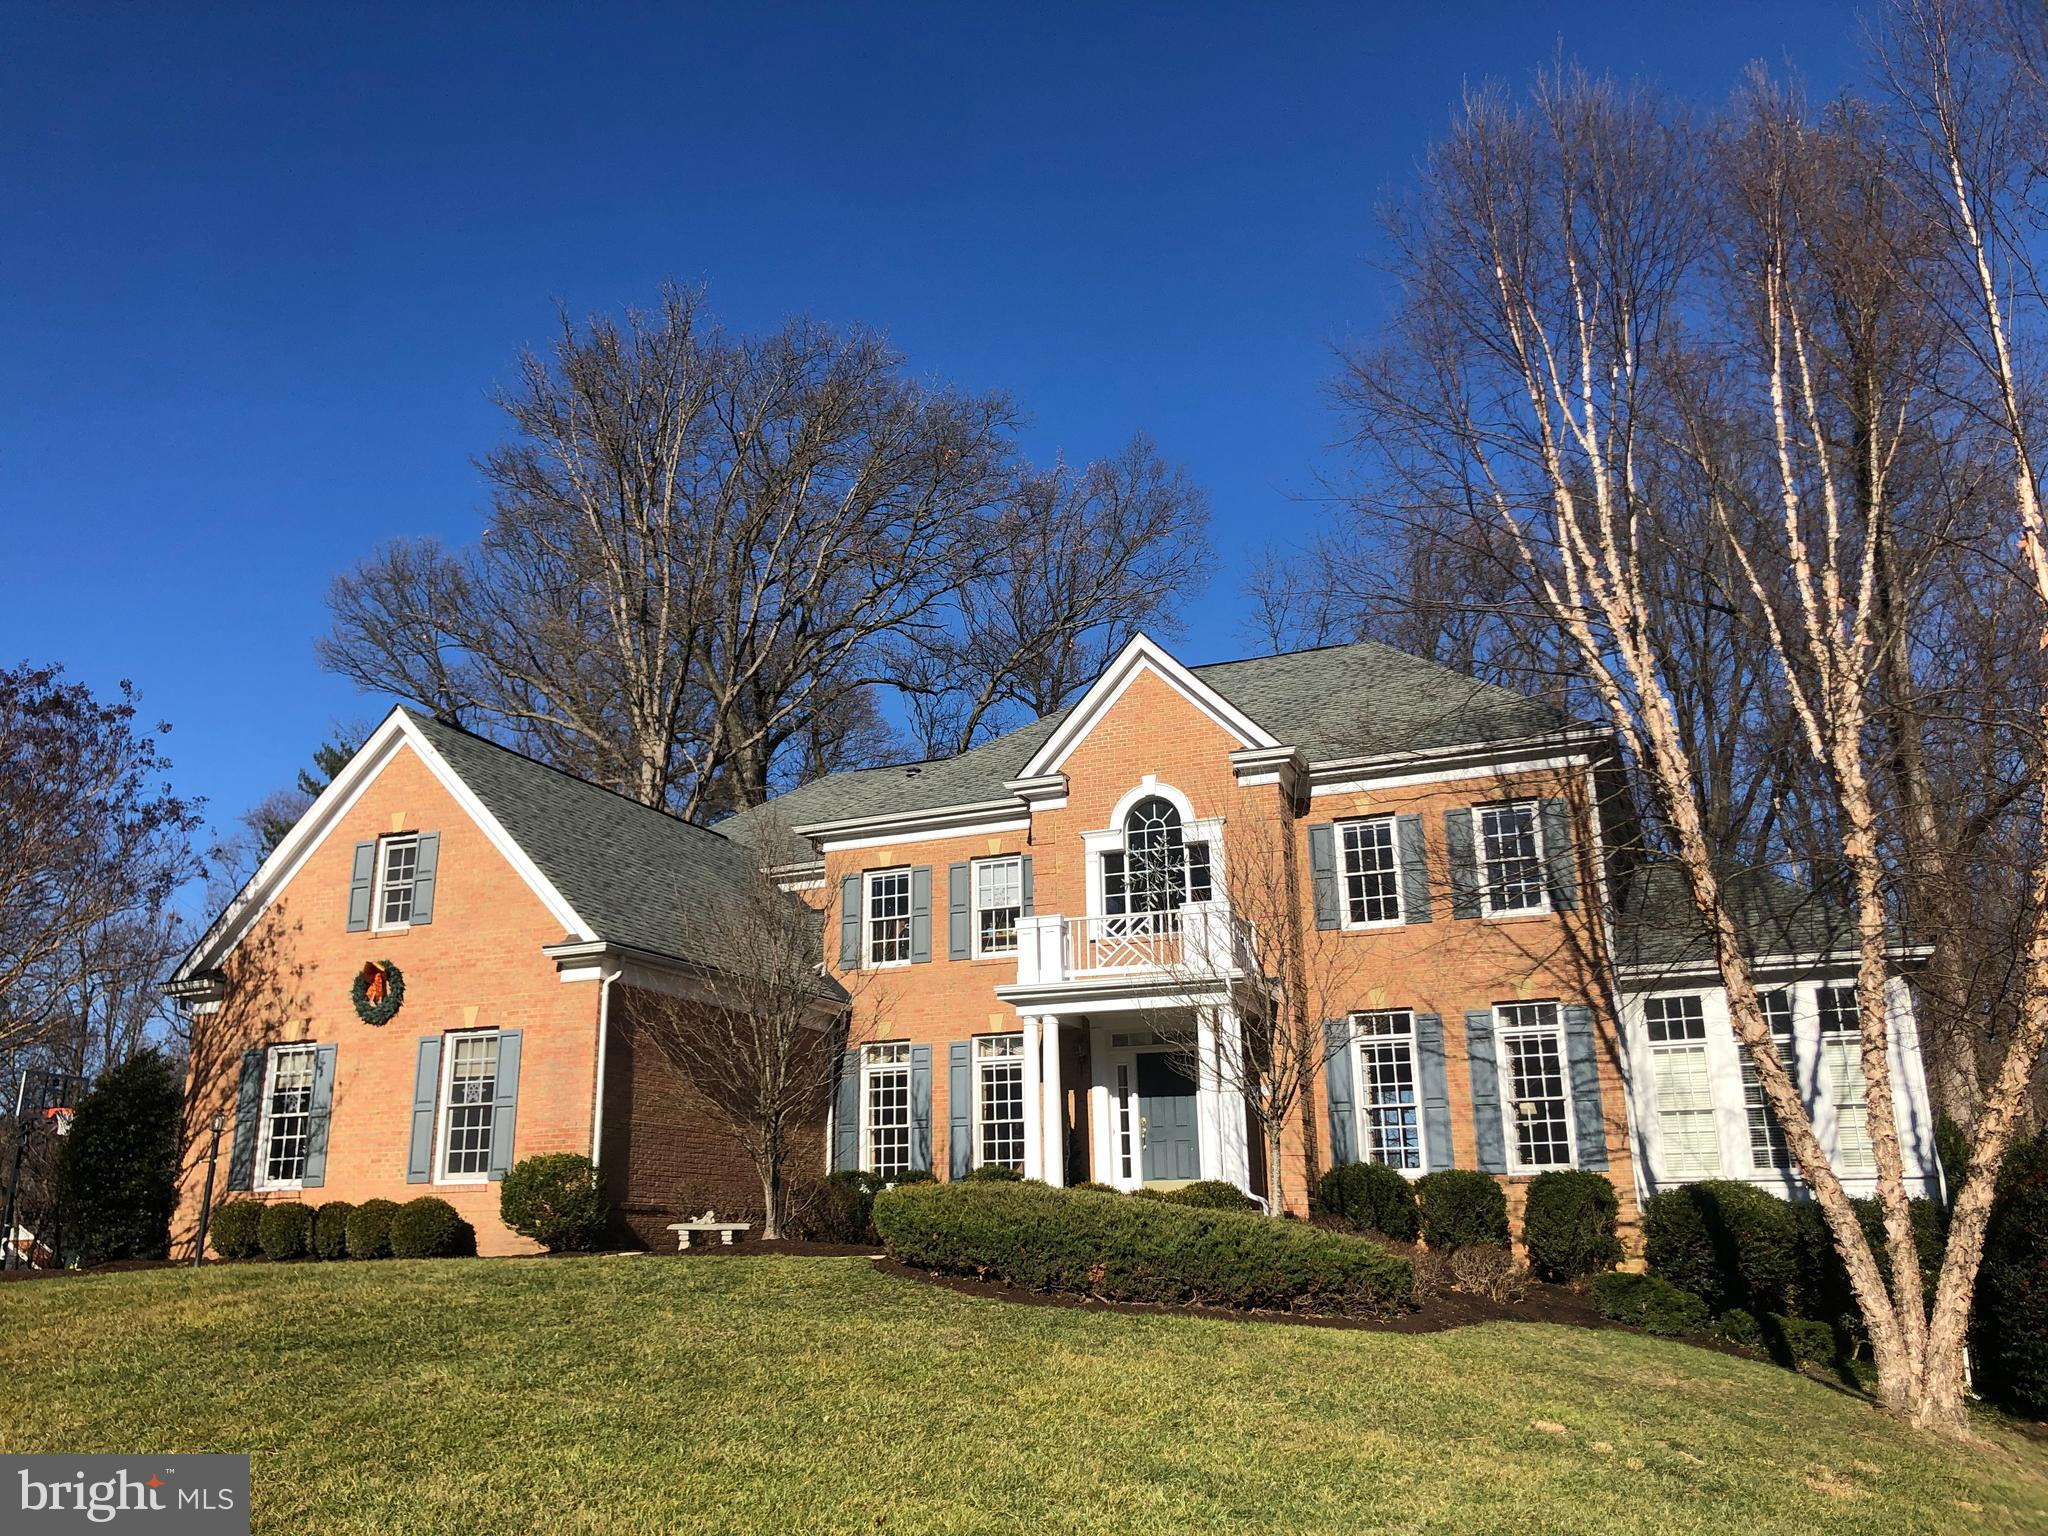 8608 MORNINGSIDE WOODS PLACE, FAIRFAX, VA 22031